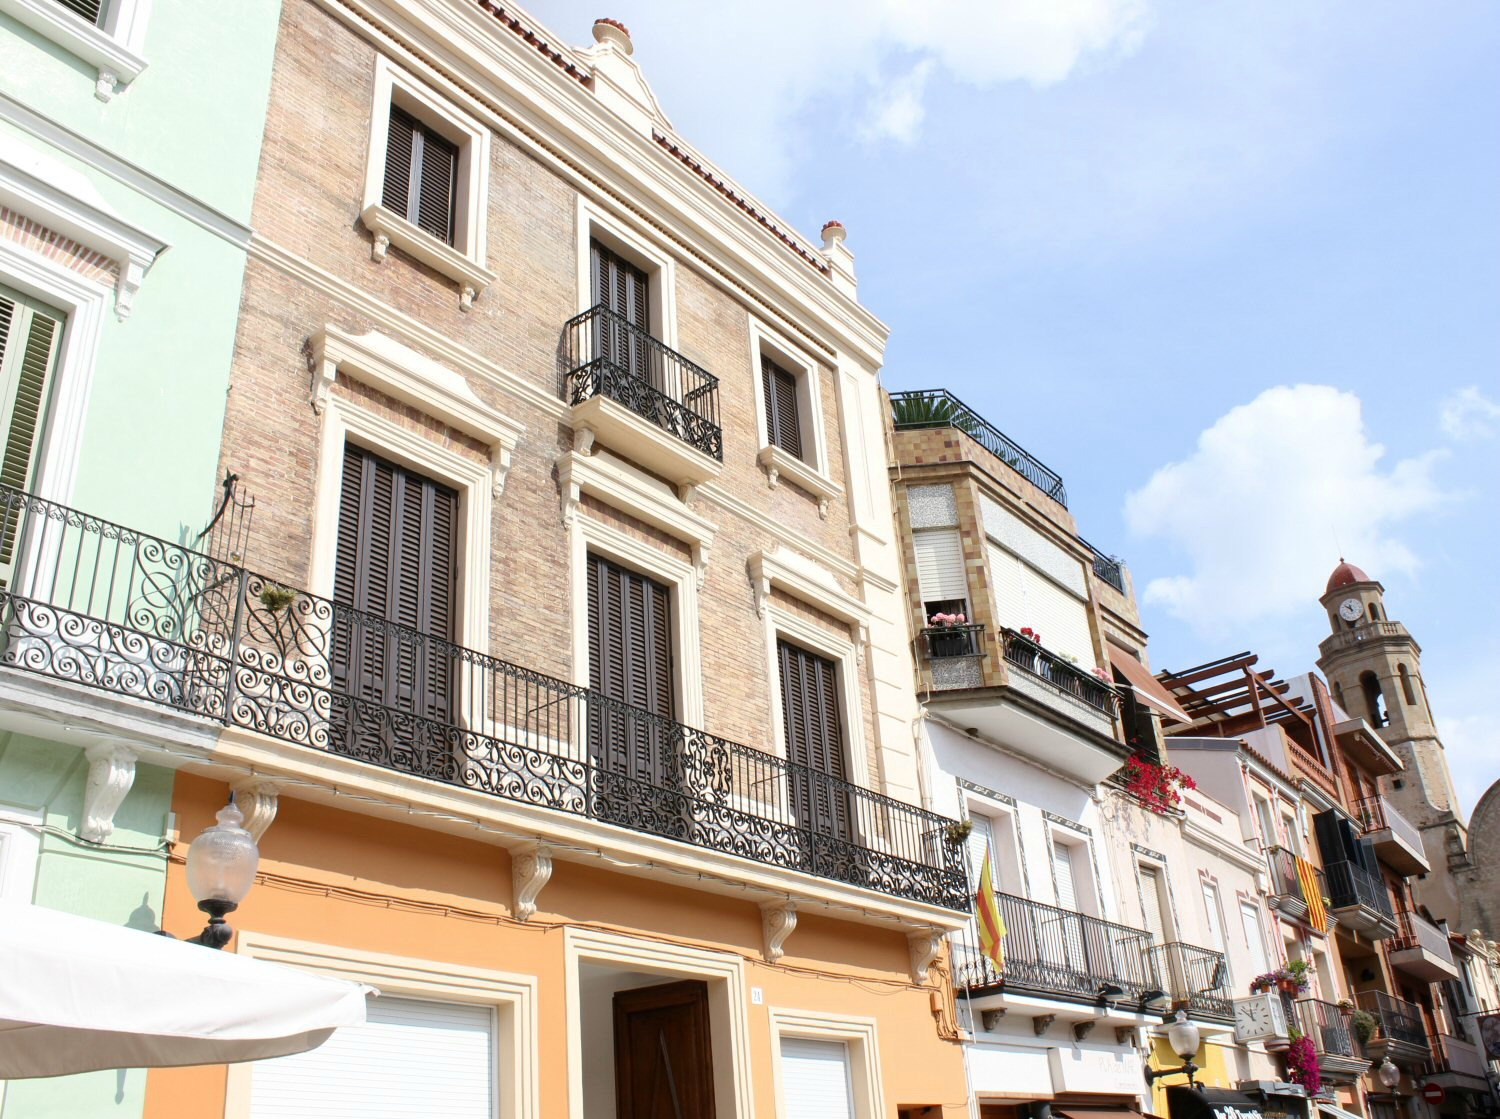 The picturesque buildings with their pastel colours and metal balconies in Calella.My photo tour of Costa Barcelona